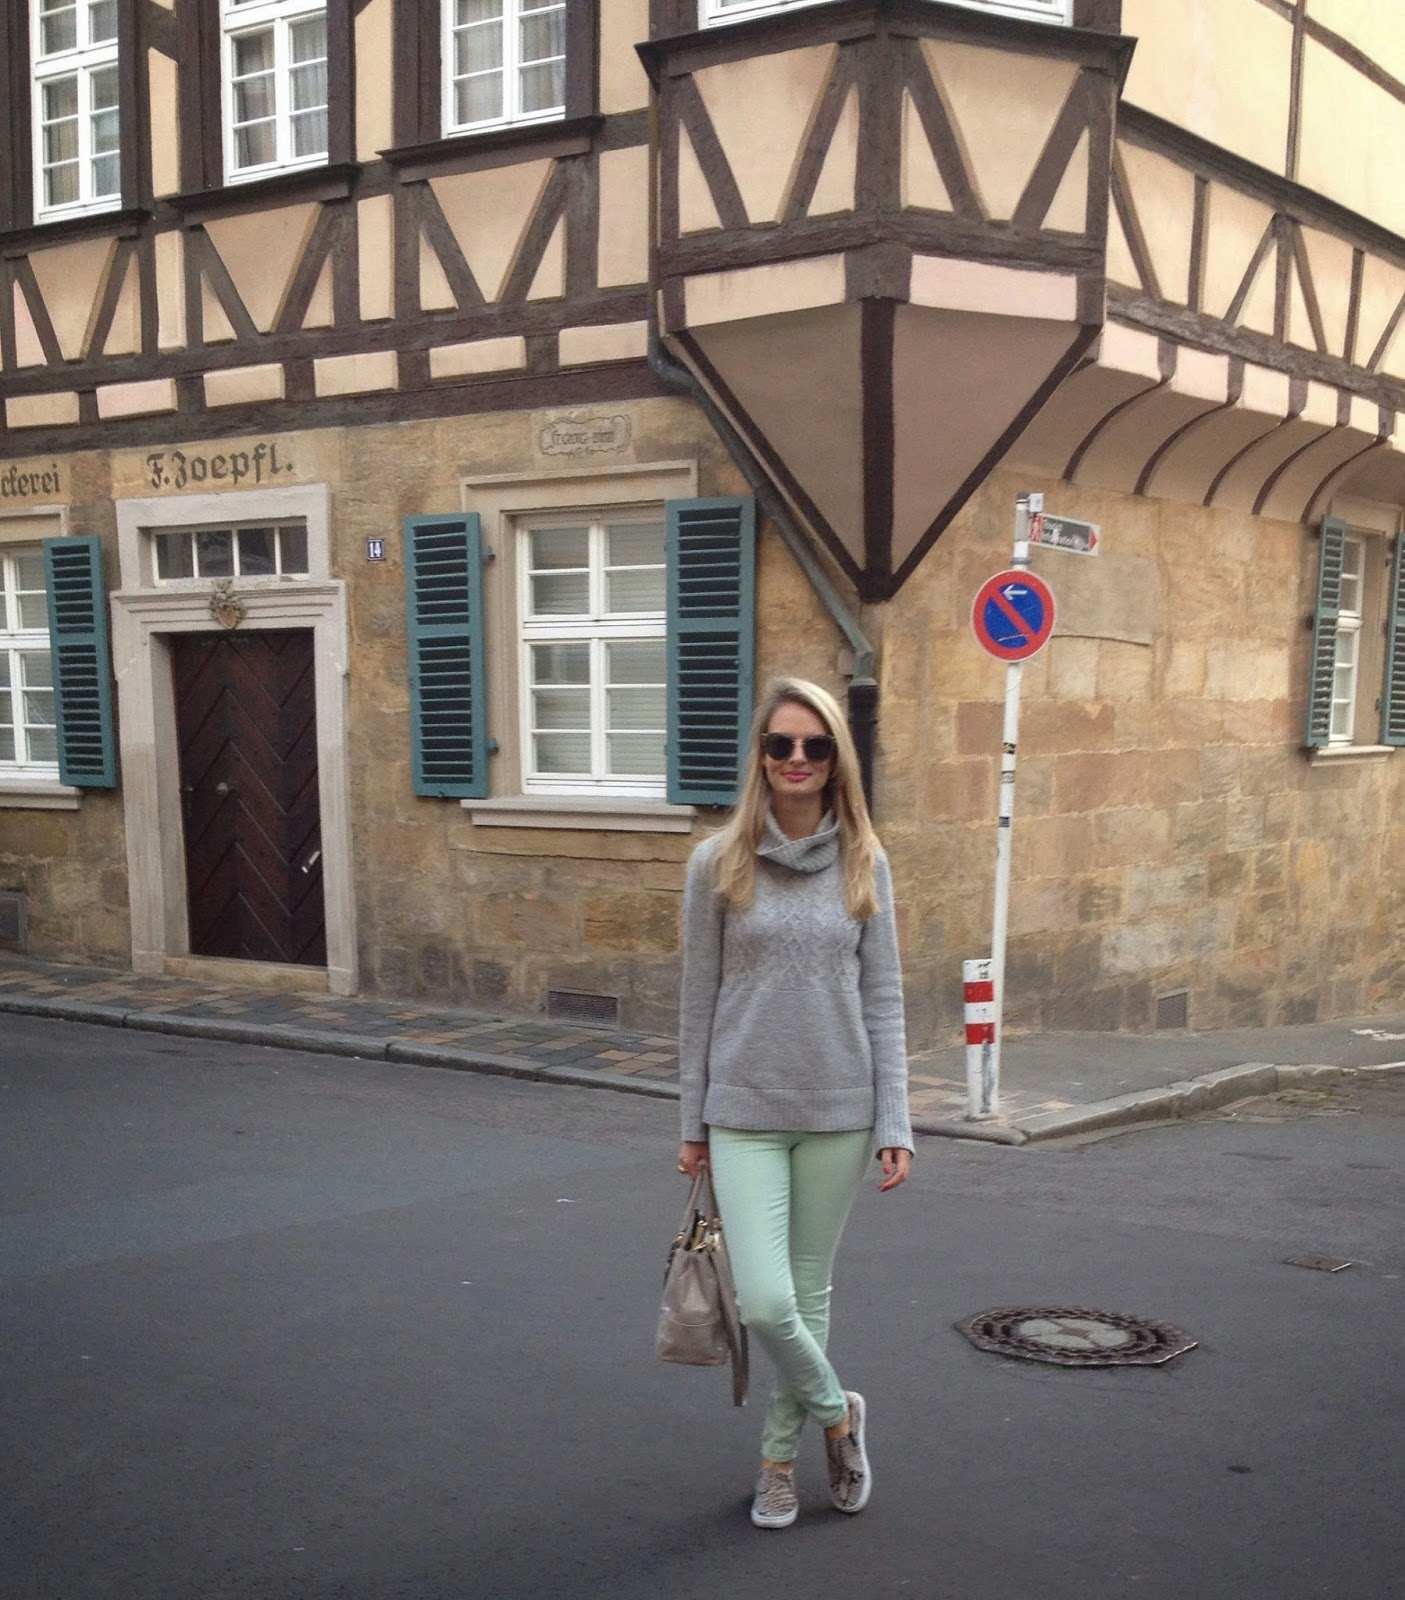 Guess, guess jeans, guess pants, fashion blogger, german blogger, bamberg, bamberg street style, street style, gap, gap jumper, miu miu sunglasses, grey jumper, prada bag, frankonia, gingerbread house